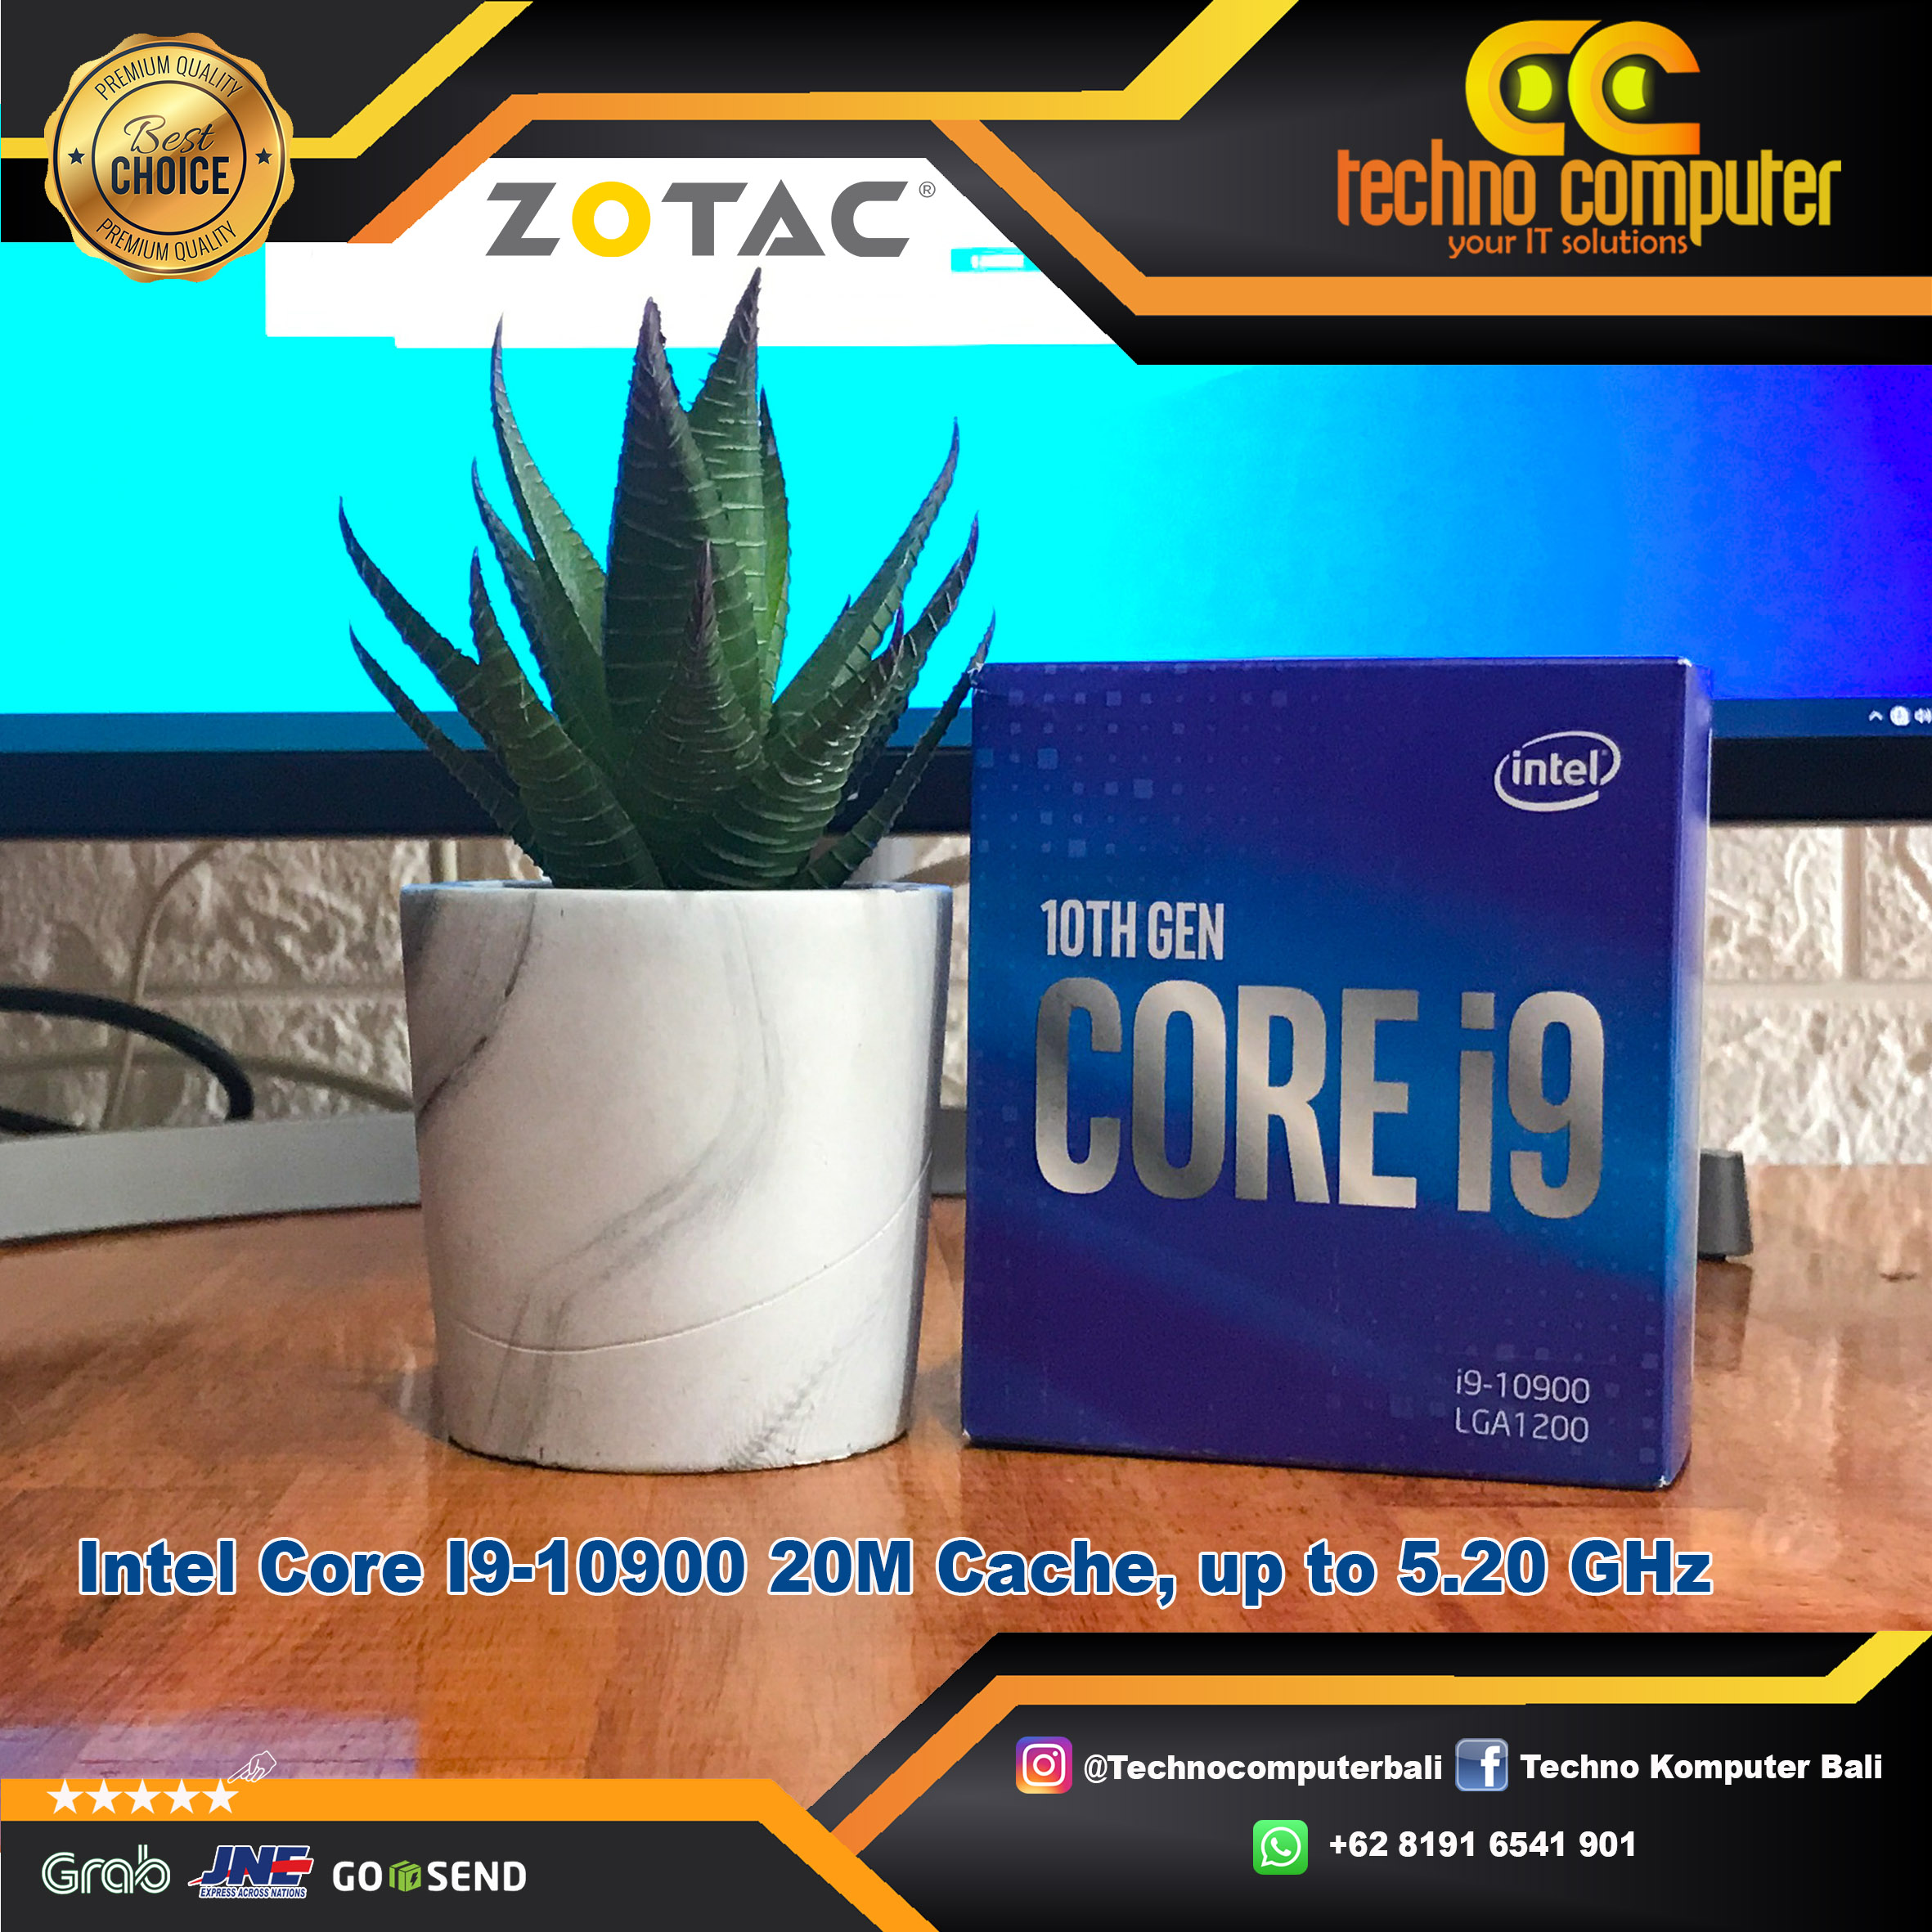 PROCESSOR INTEL CORE I9-10900 20M Cache, up to 5.20 GHz